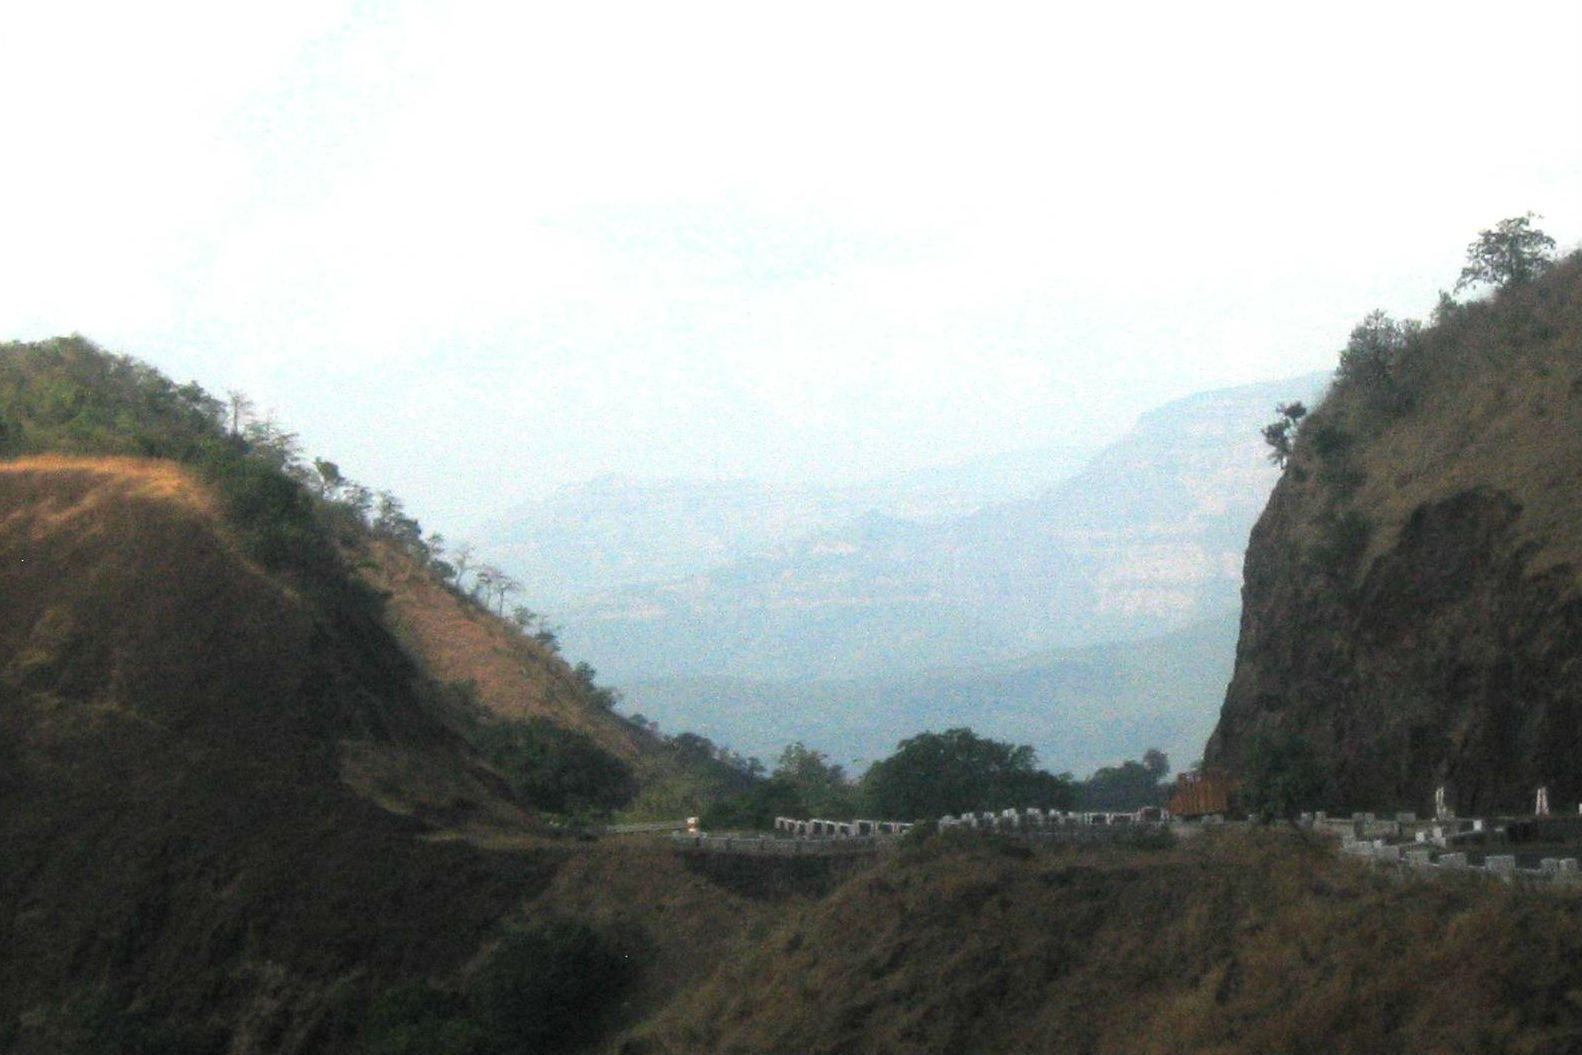 How to reach Amba Ghat in Kohlapur district?